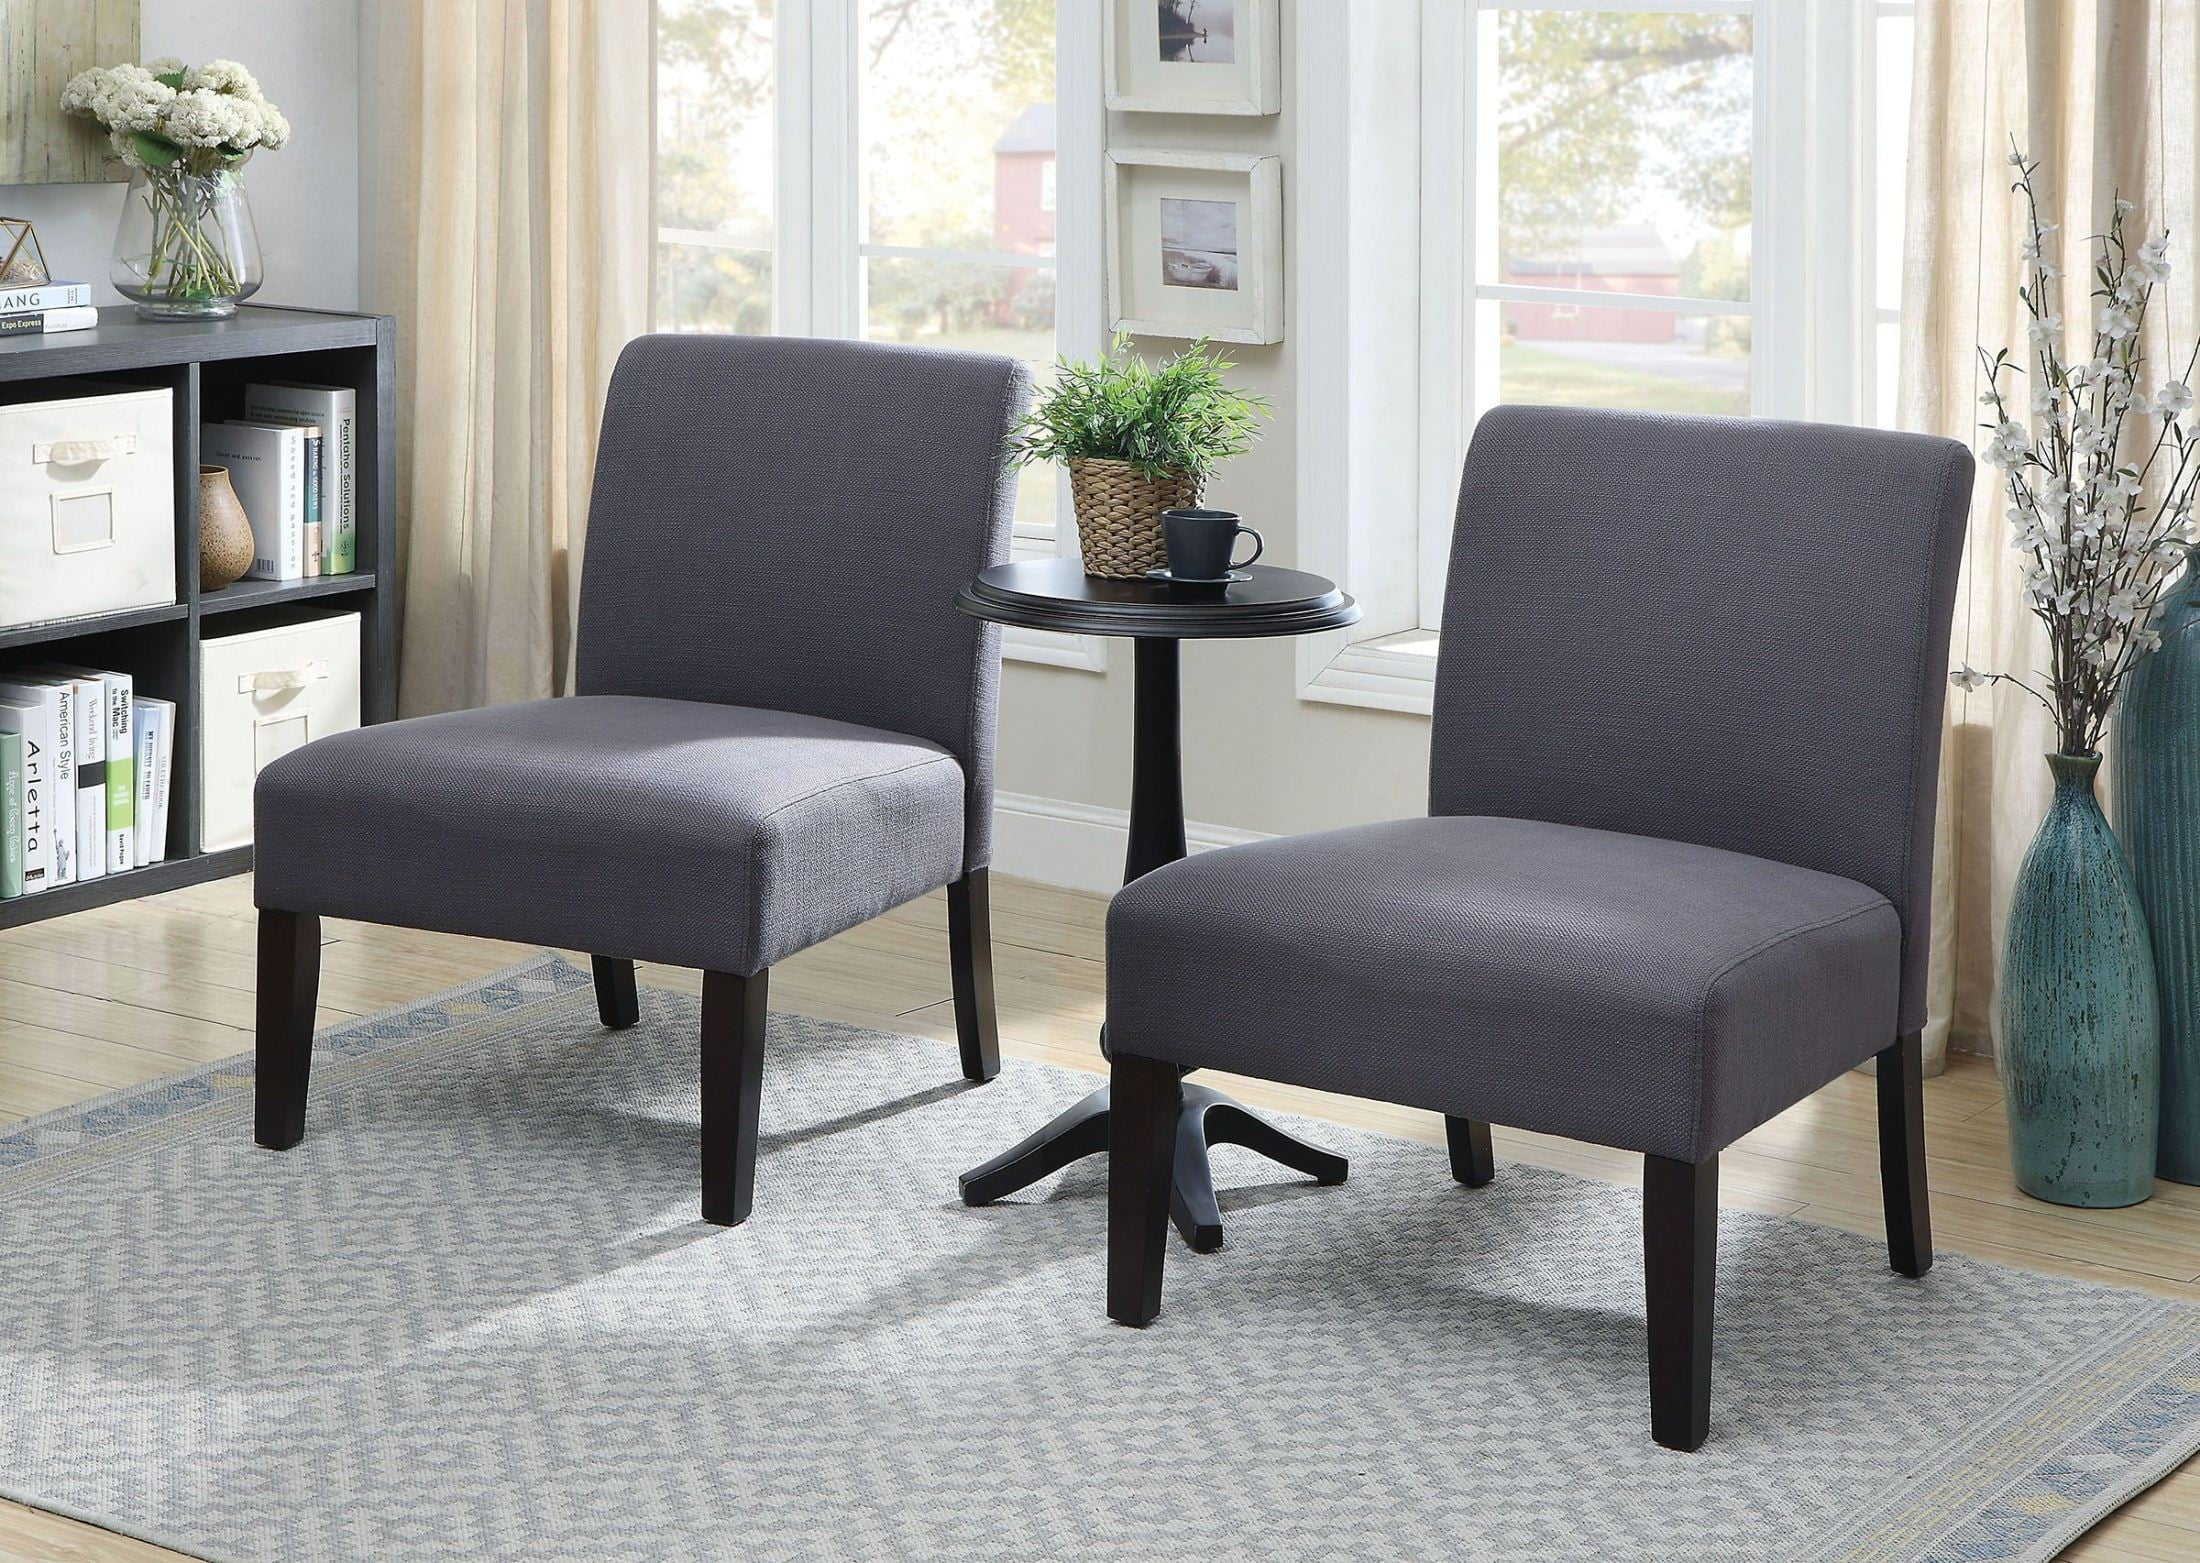 Sudbury Gray Accent Table Chair Set & Sudbury Gray Accent Table u0026 Chair Set from Furniture of America ...